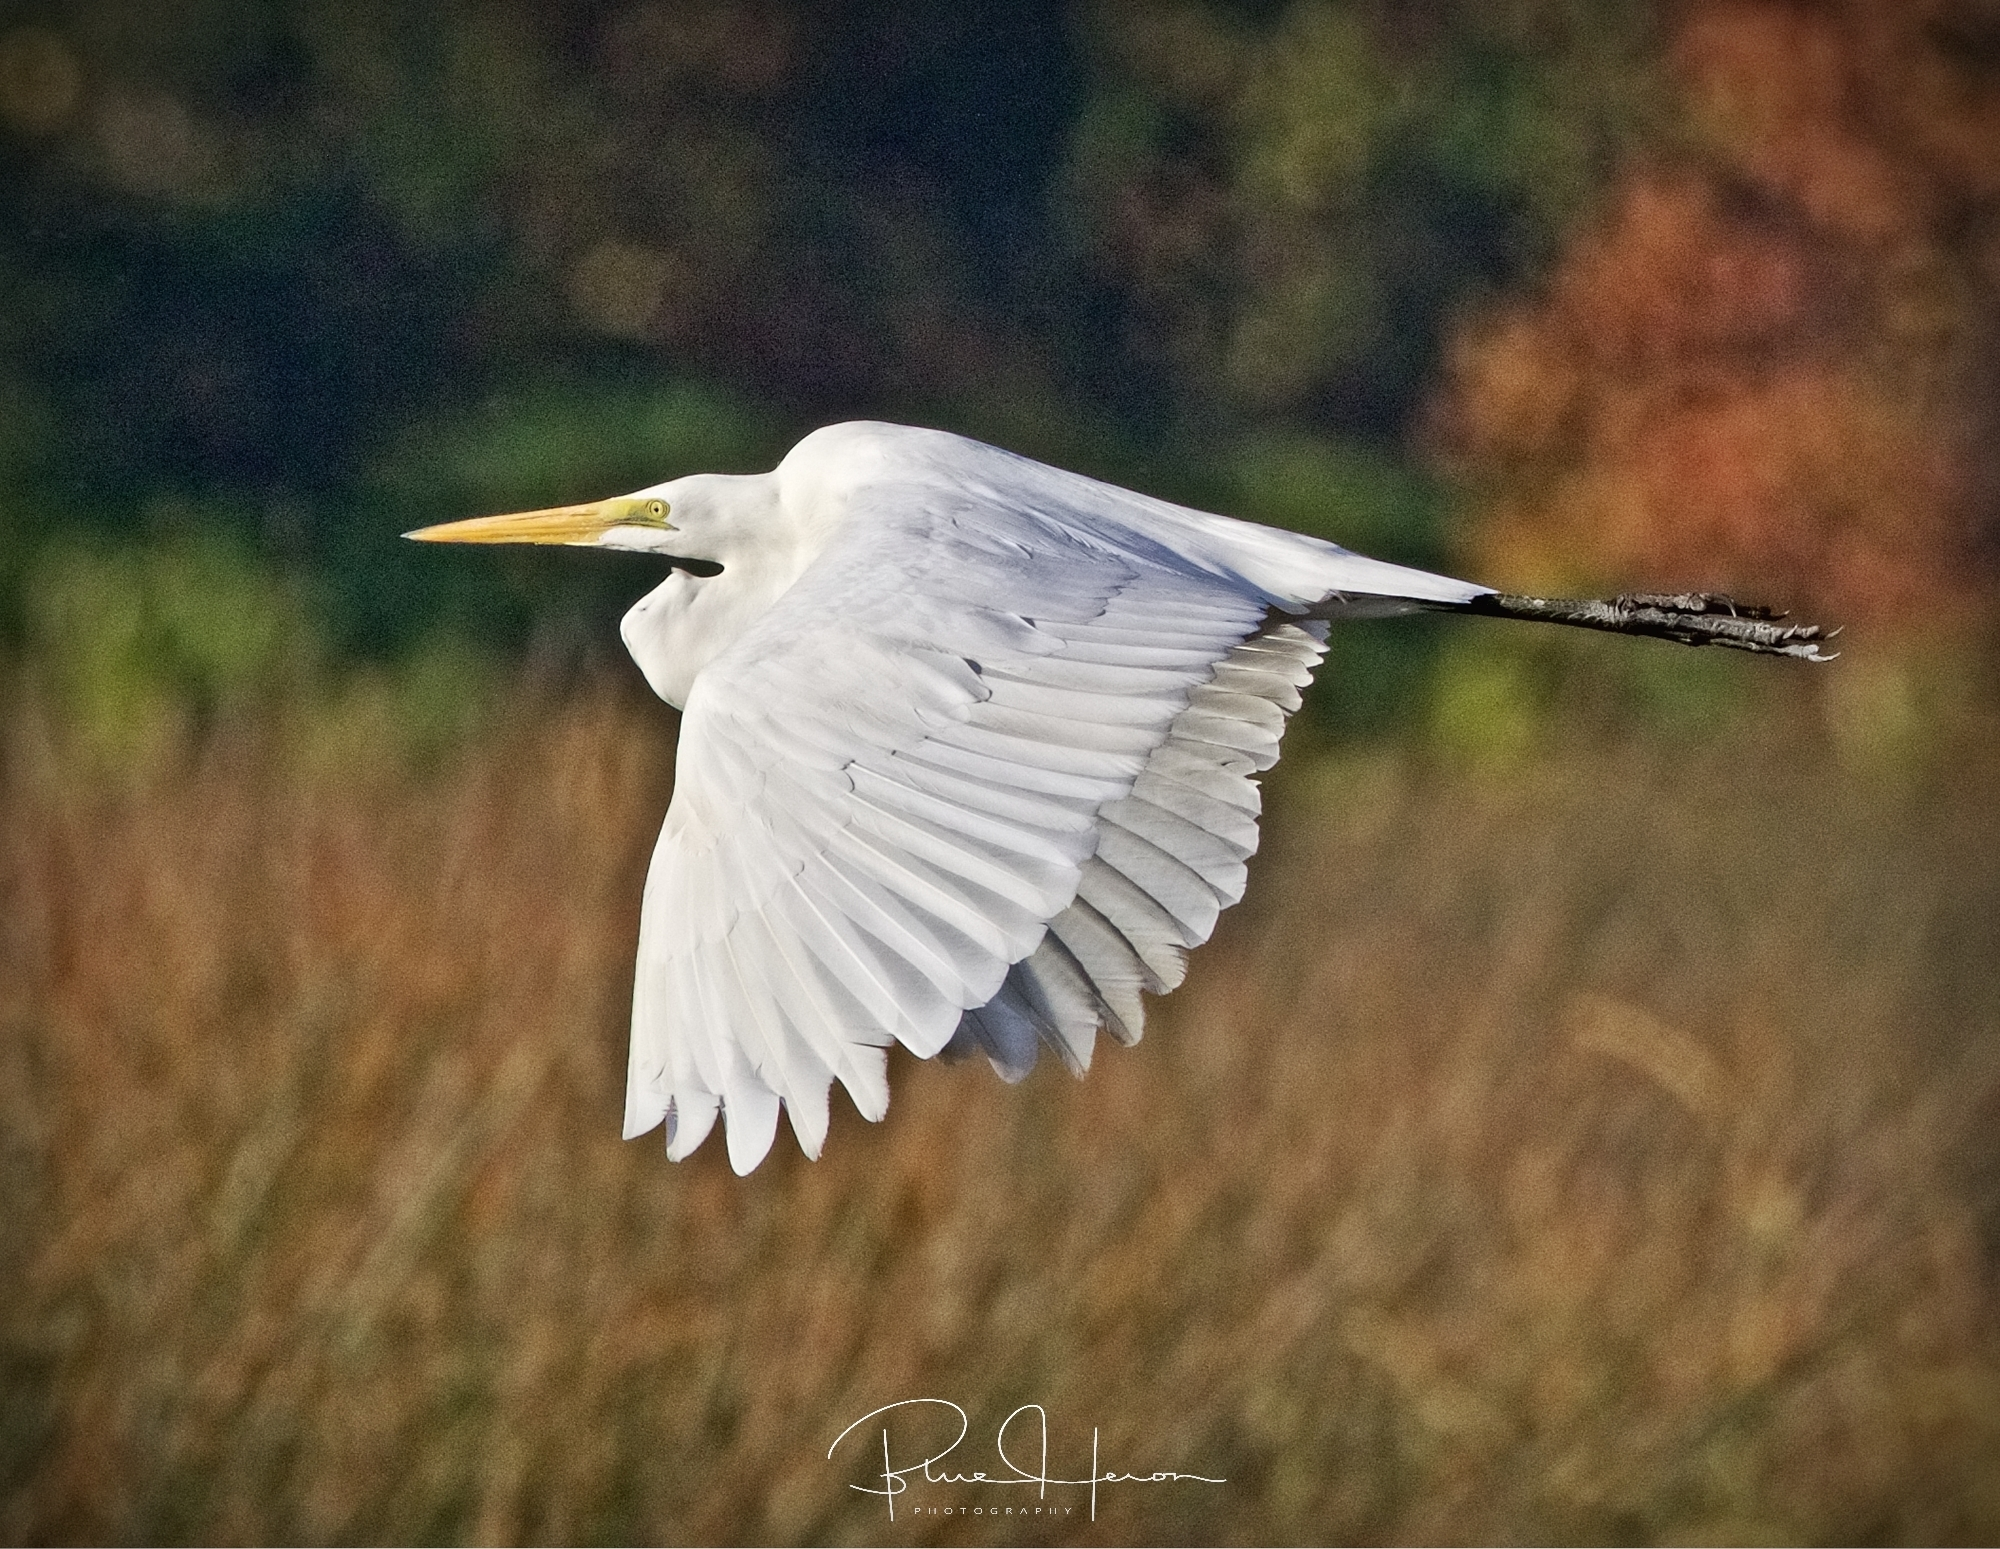 Don't shoot, I am not a turkey said the Great Egret